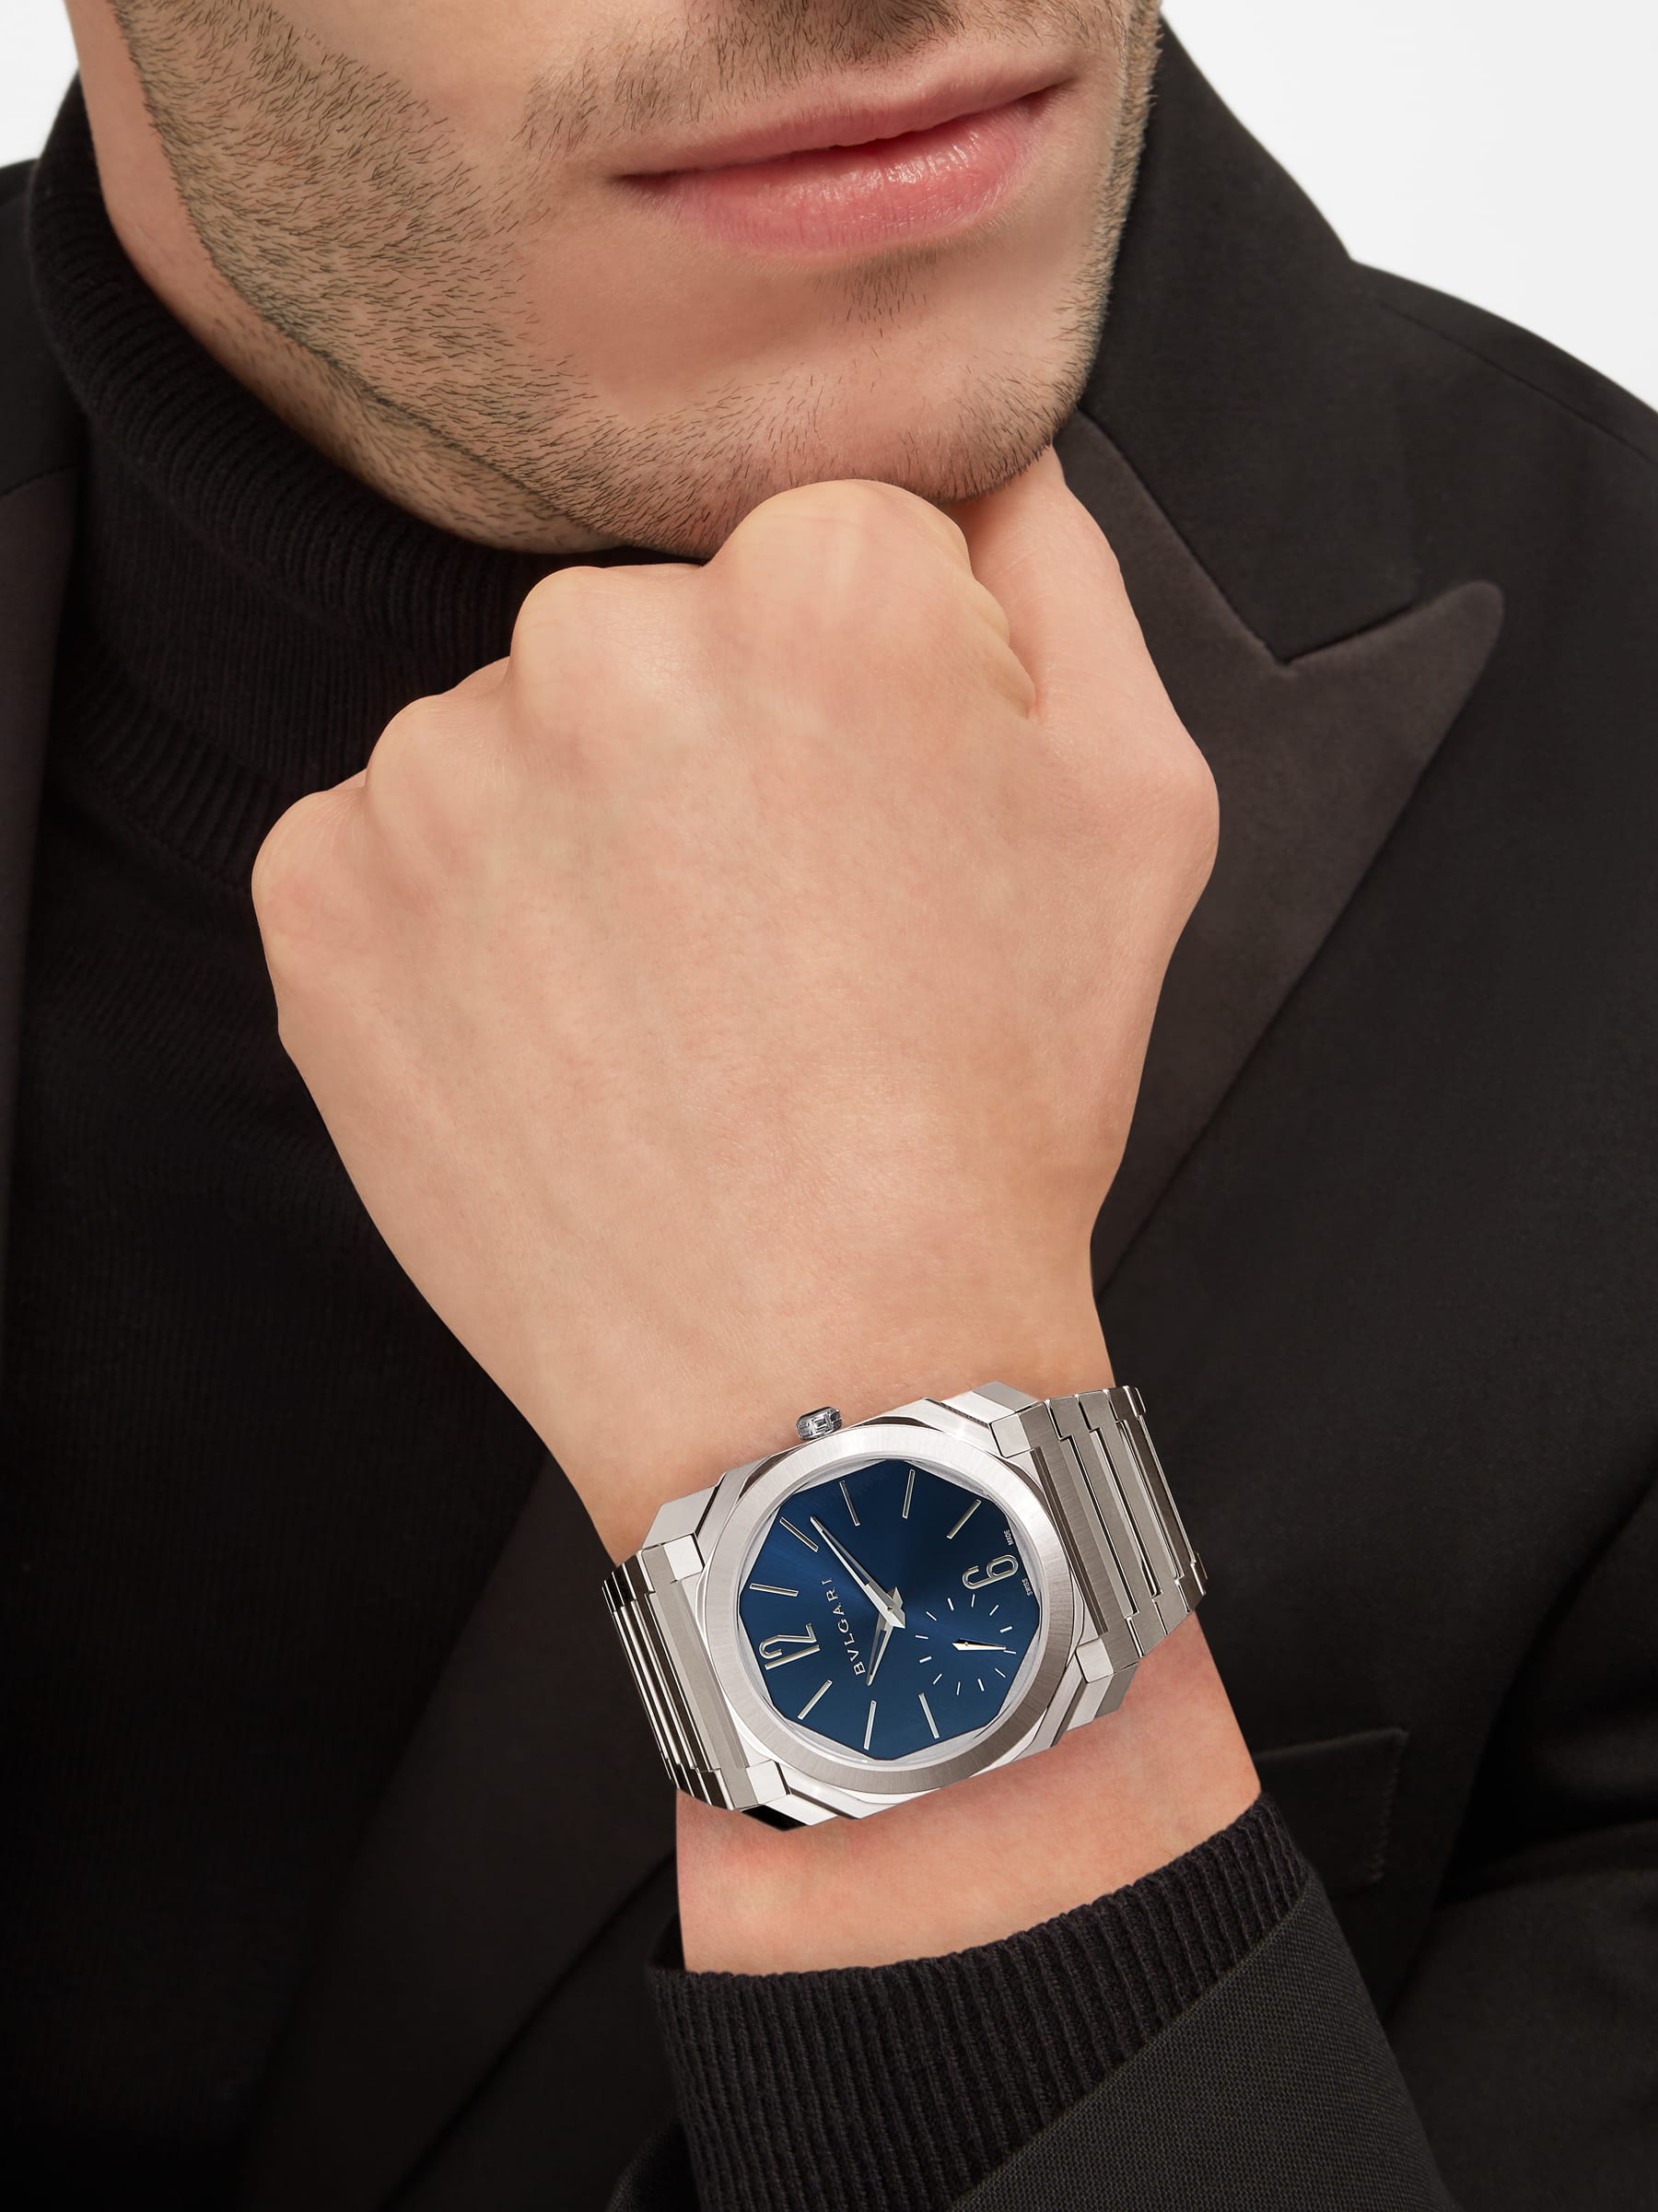 Octo Finissimo Automatic watch with mechanical manufacture movement, automatic winding, platinum microrotor, small seconds, extra-thin satin-polished stainless steel case and integrated bracelet, transparent case back and blue laquered dial with sunburst finishing. Water-resistant up to 100 metres 103431 image 5